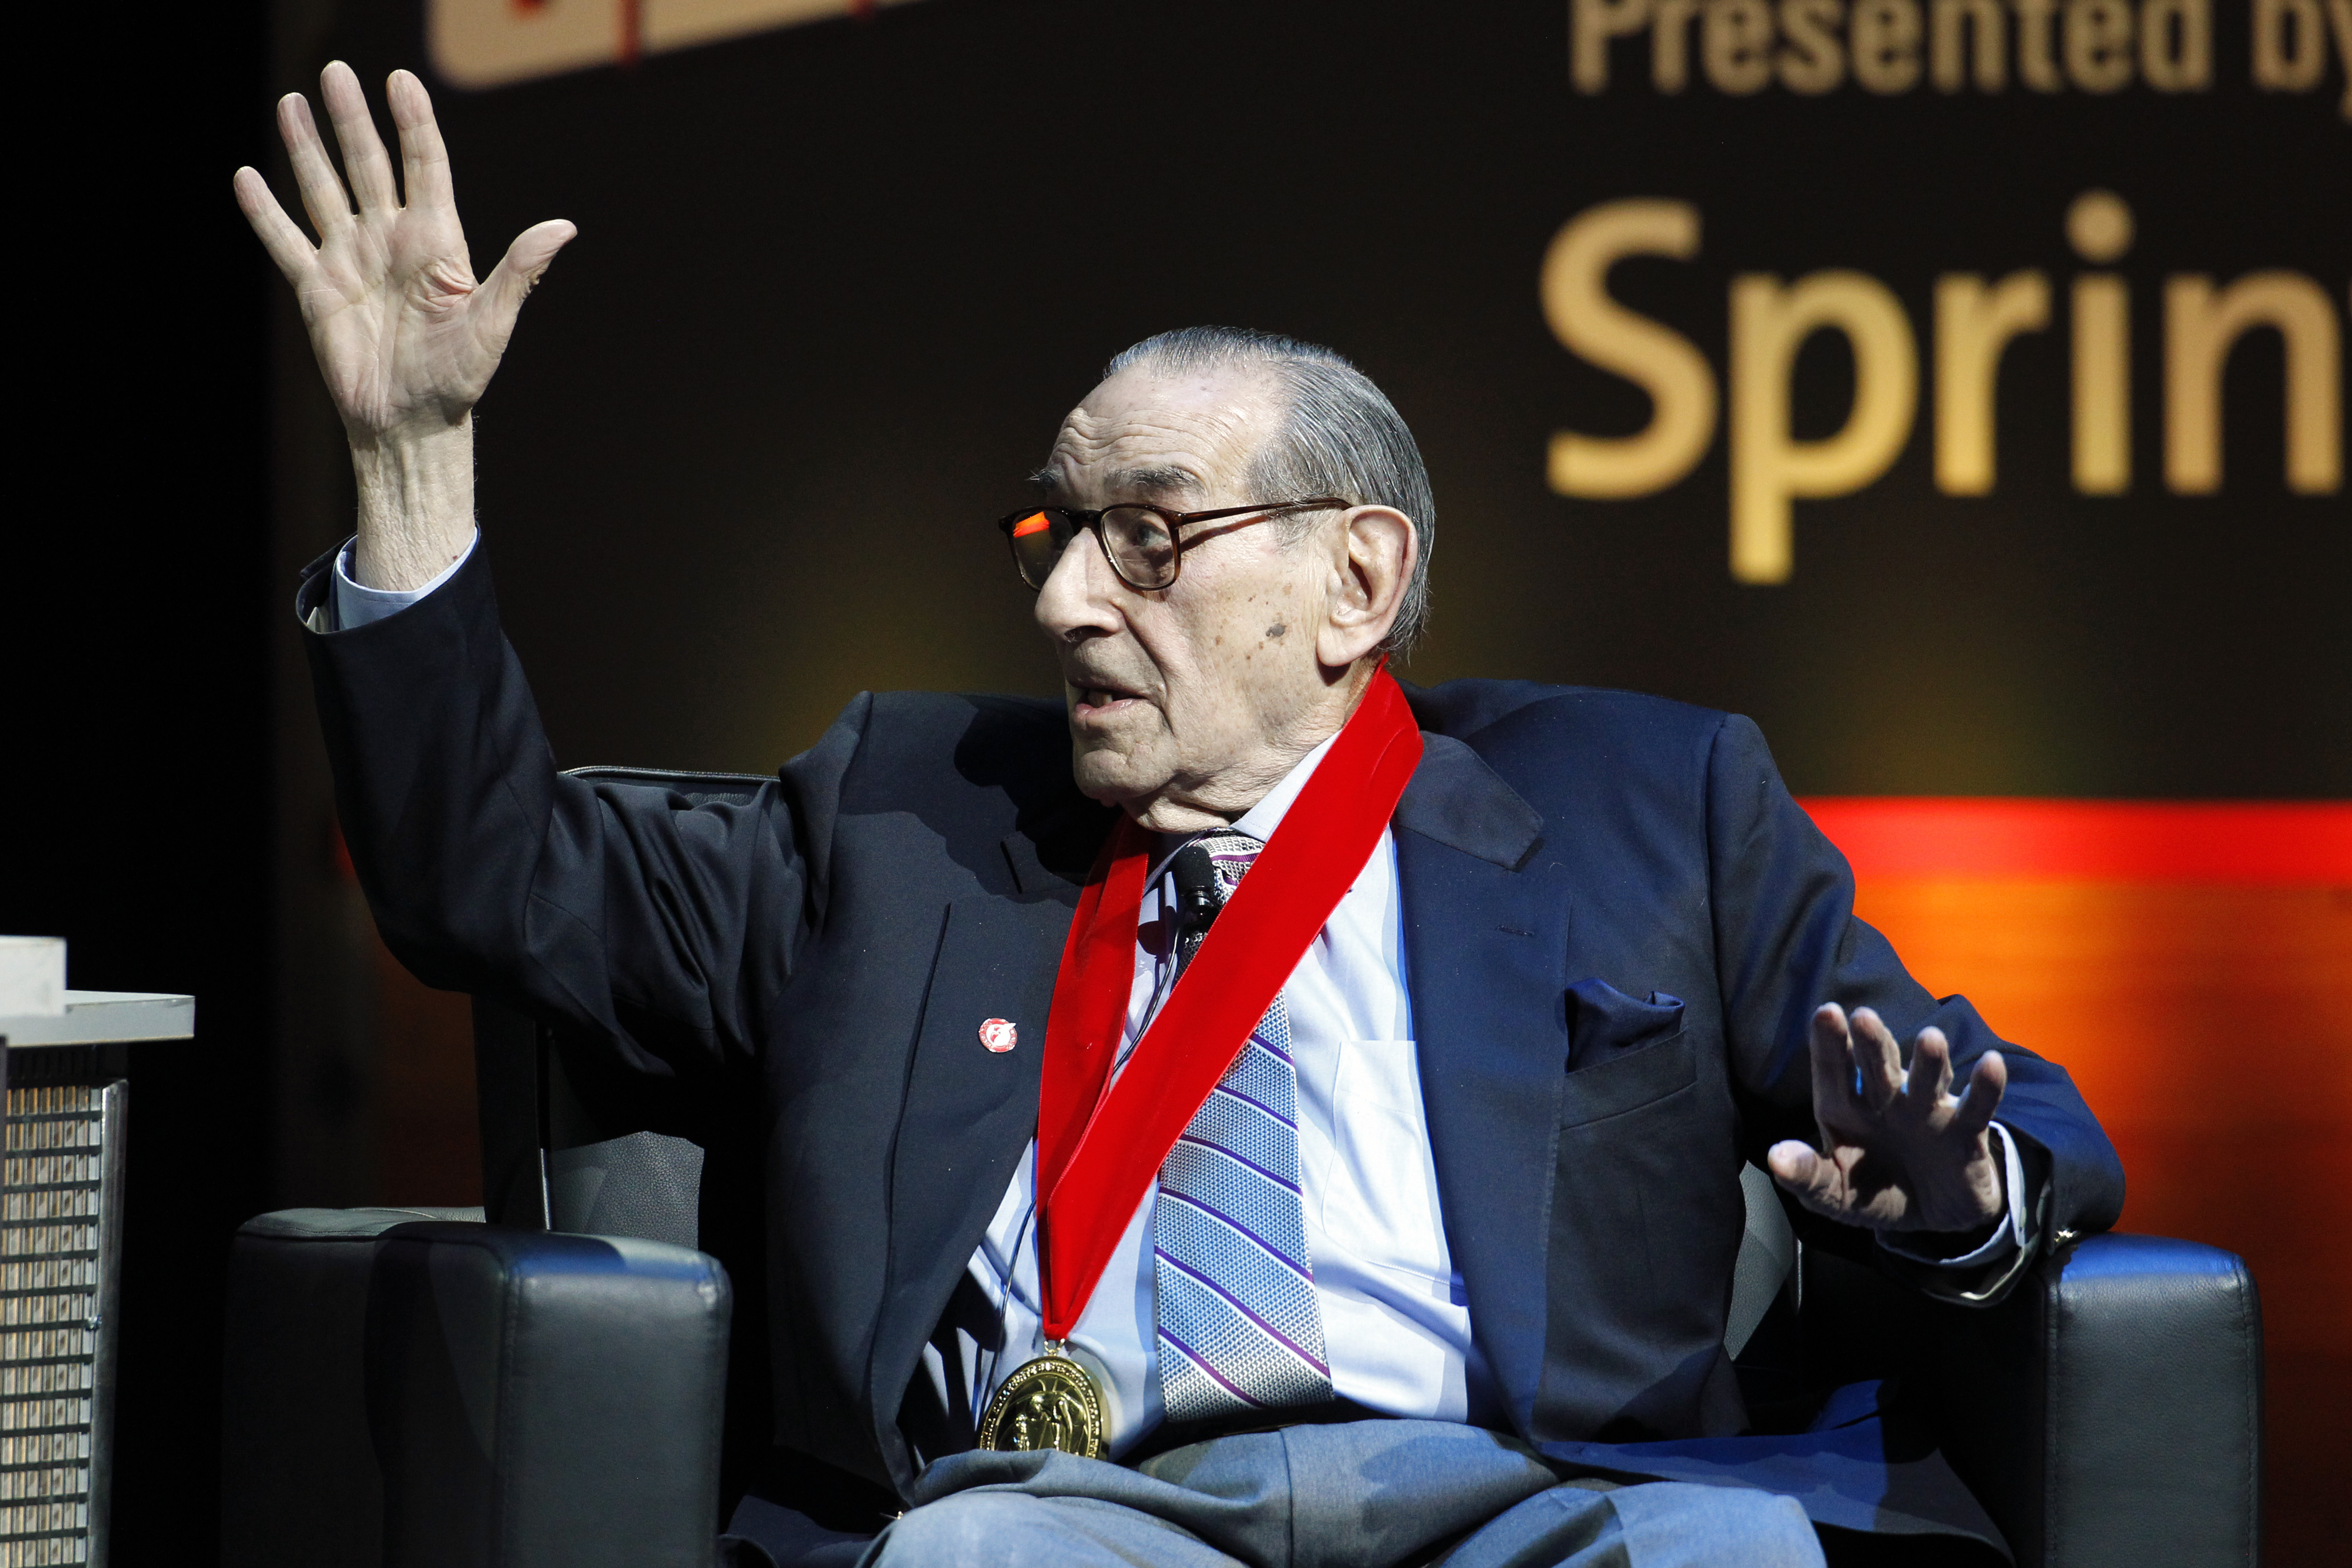 Five-Star Basketball Camp founder Howard Garfinkel talks about some of the star players he worked with during a National Collegiate Basketball Hall of Fame induction event, Sunday, Nov. 23, 2014, in Kansas City, Mo. (AP Photo/Colin E. Braley)